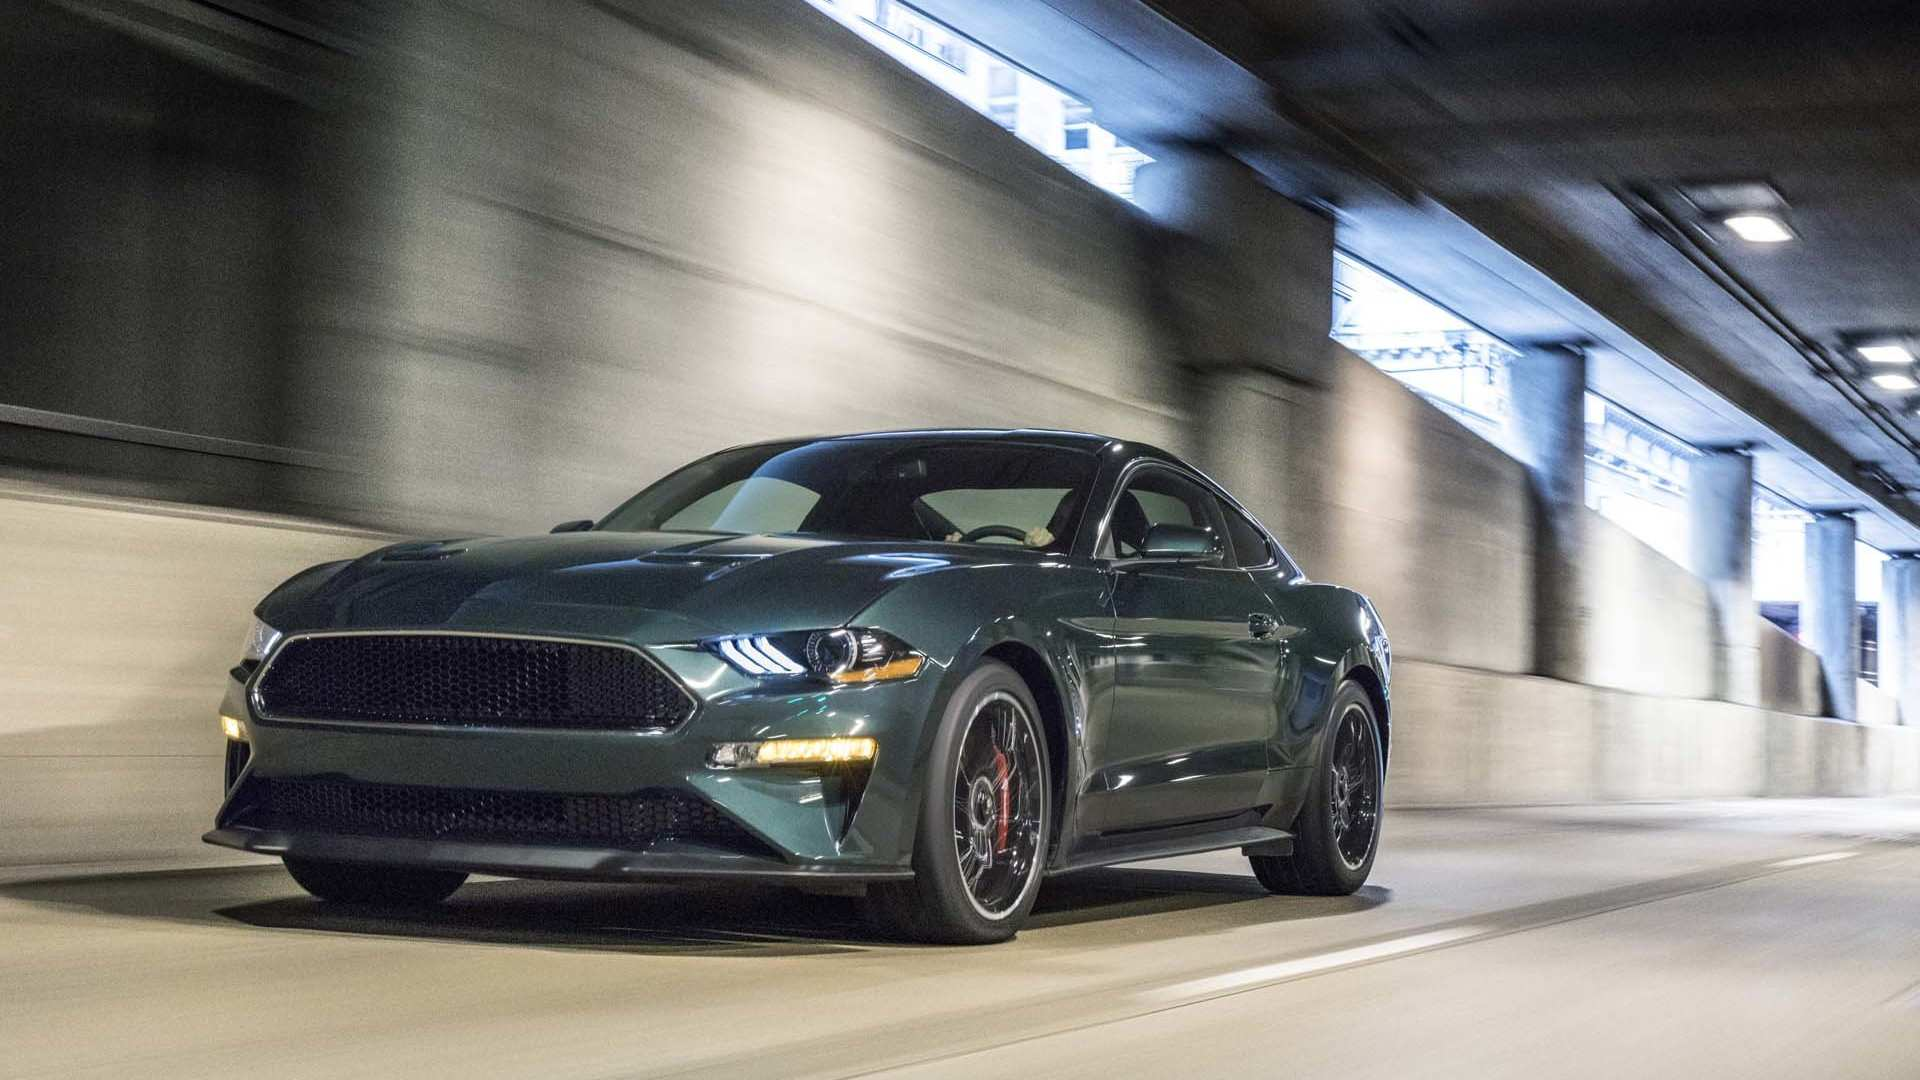 81 Best Review The Ford Bullitt 2019 For Sale First Drive Price Performance And Review New Concept for The Ford Bullitt 2019 For Sale First Drive Price Performance And Review